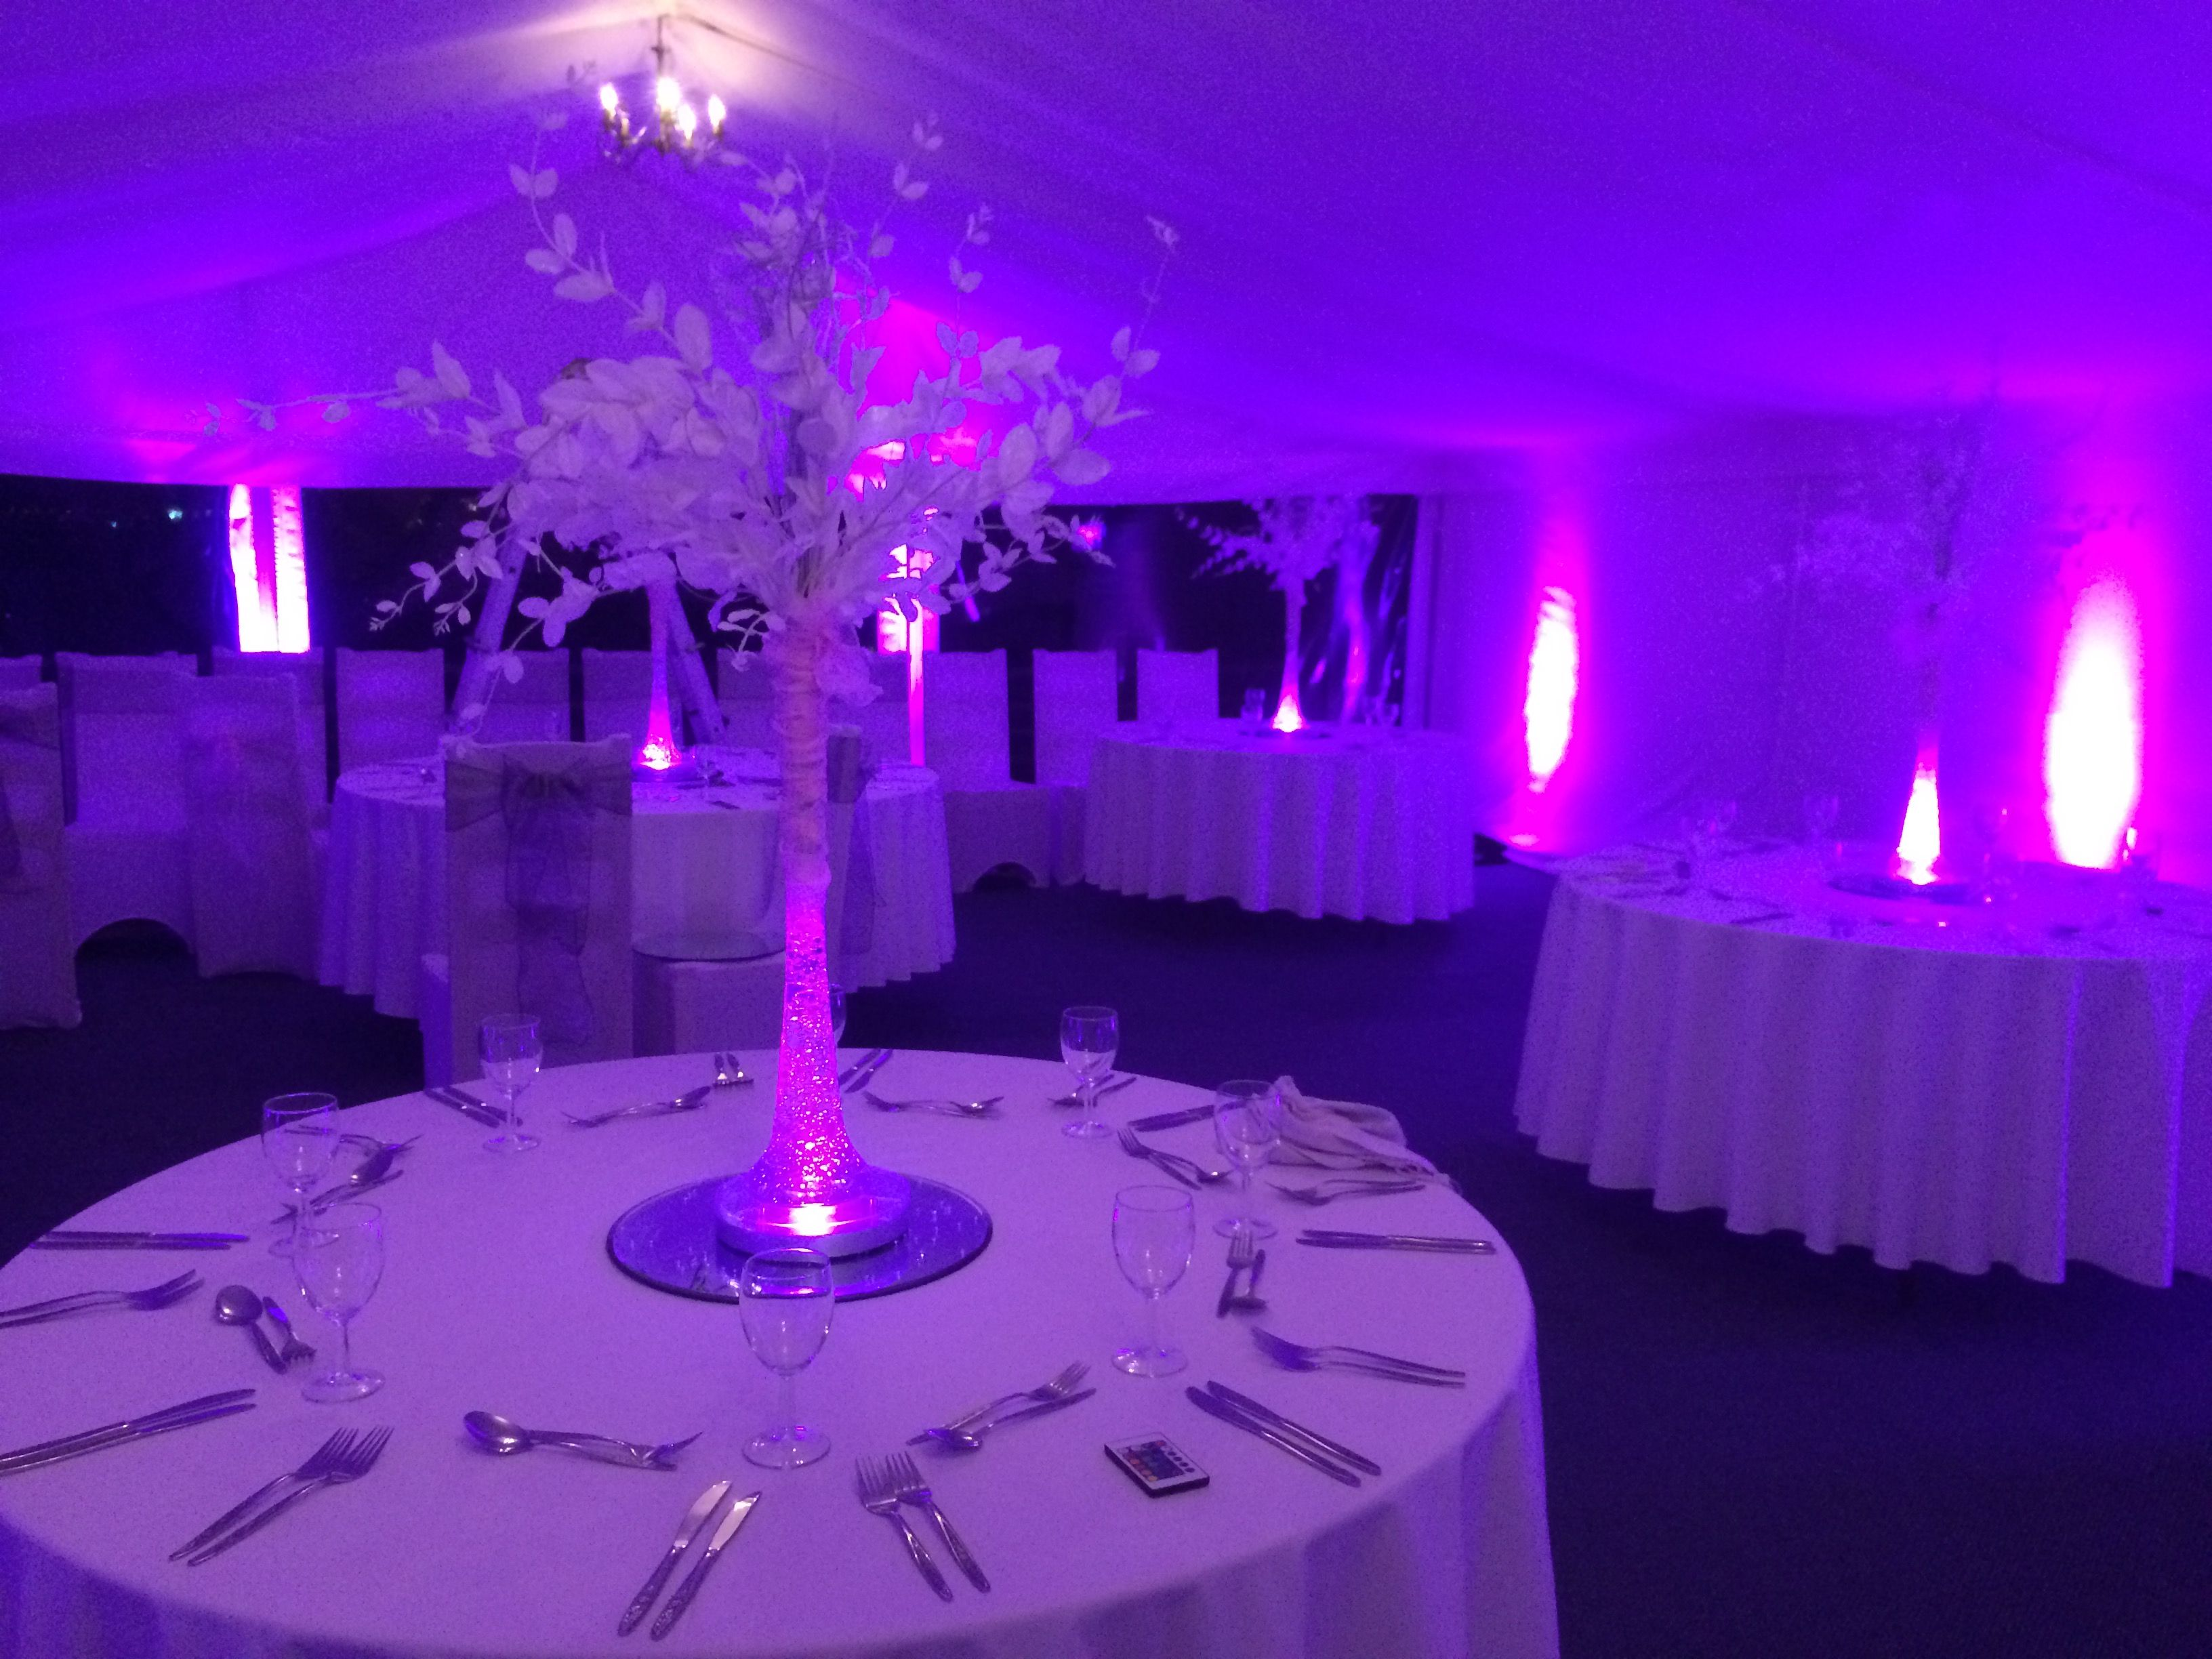 Evening marquee with uplighters lovely purple ambience for a evening marquee with uplighters lovely purple ambience for a wedding kent wedding venue junglespirit Image collections